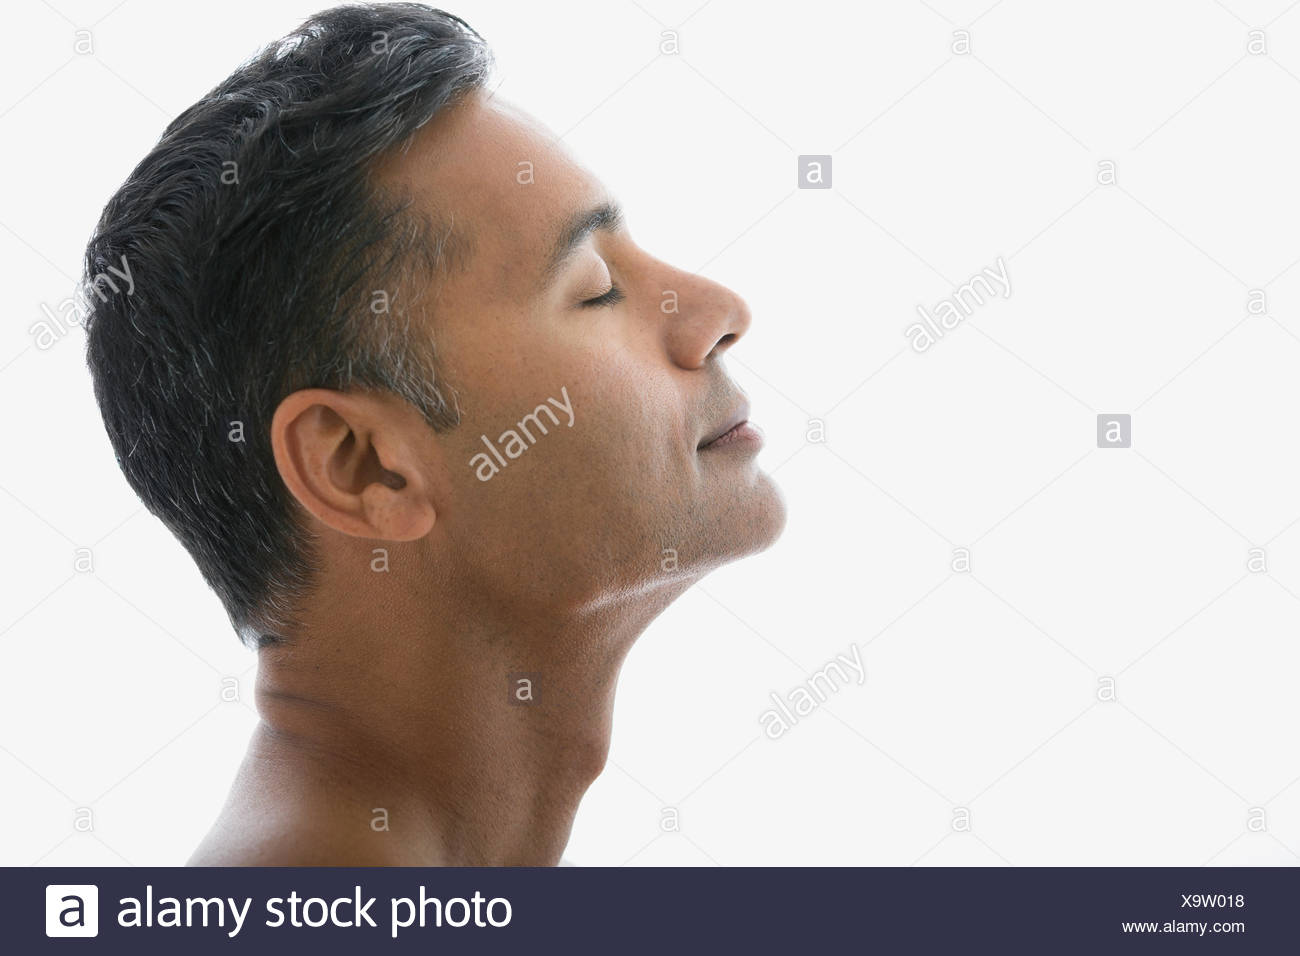 Man with head back and eyes closed - Stock Image